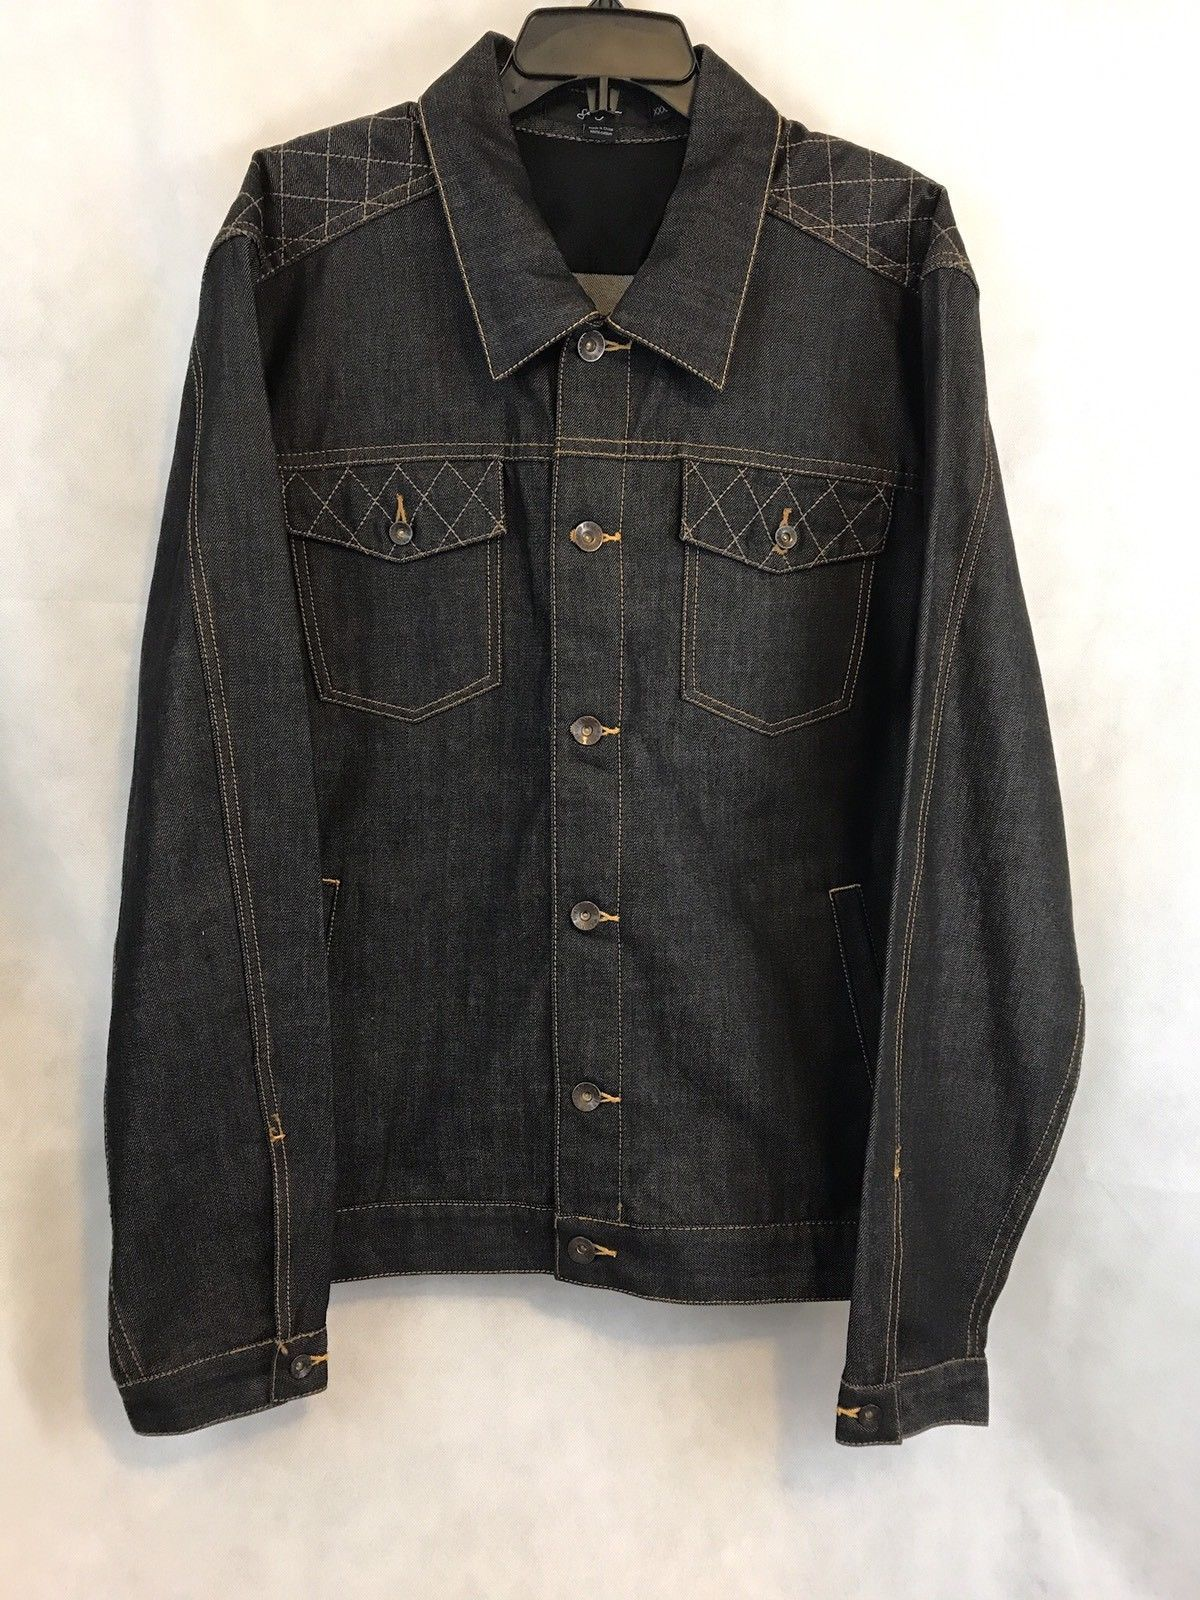 Sean john dark denim jean jacket button front size xxxl pinterest